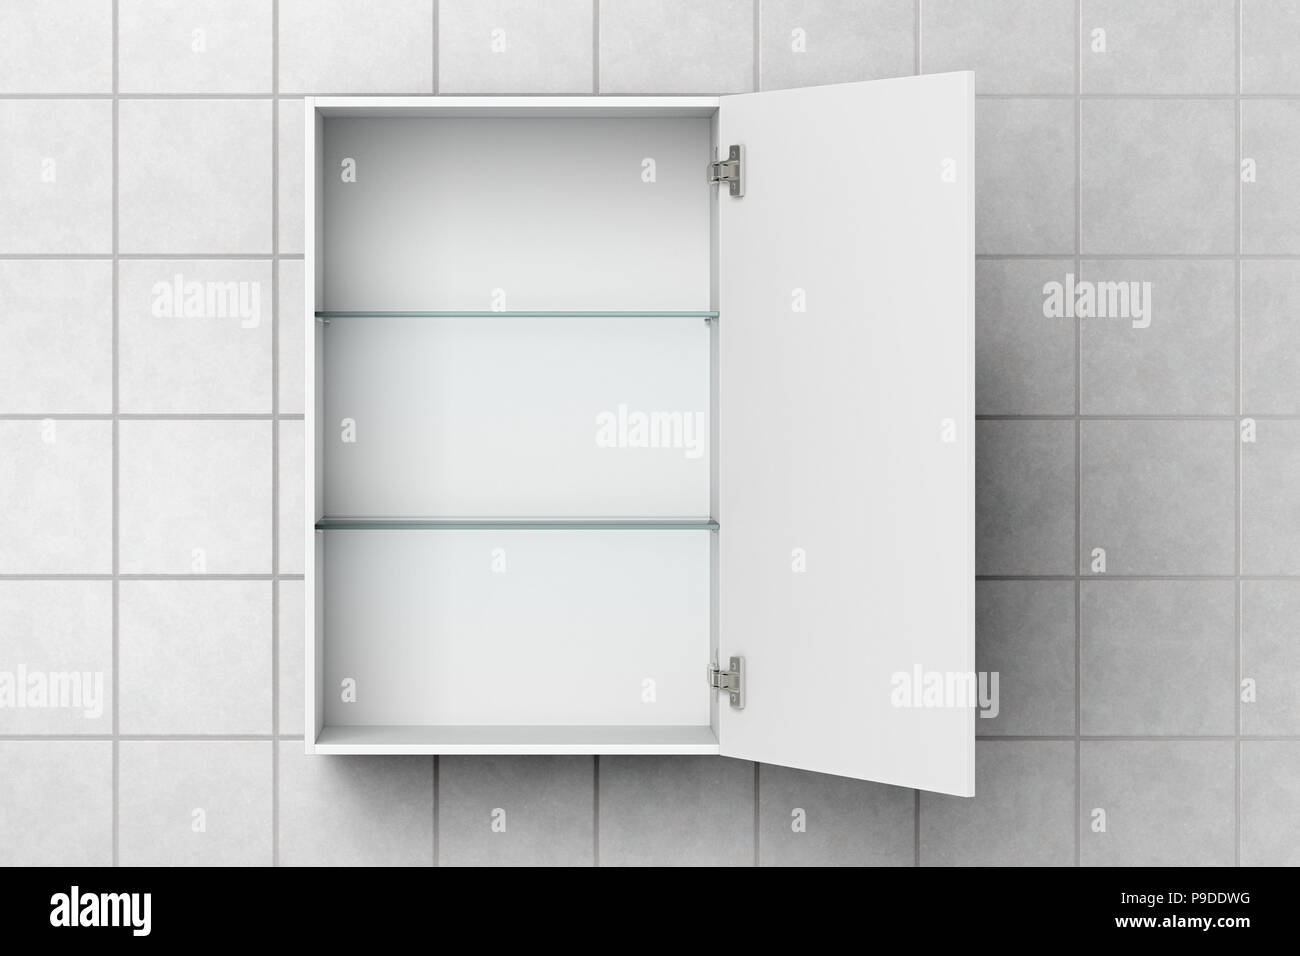 Open empty white bathroom cabinet isolated on white tiled wall with ...